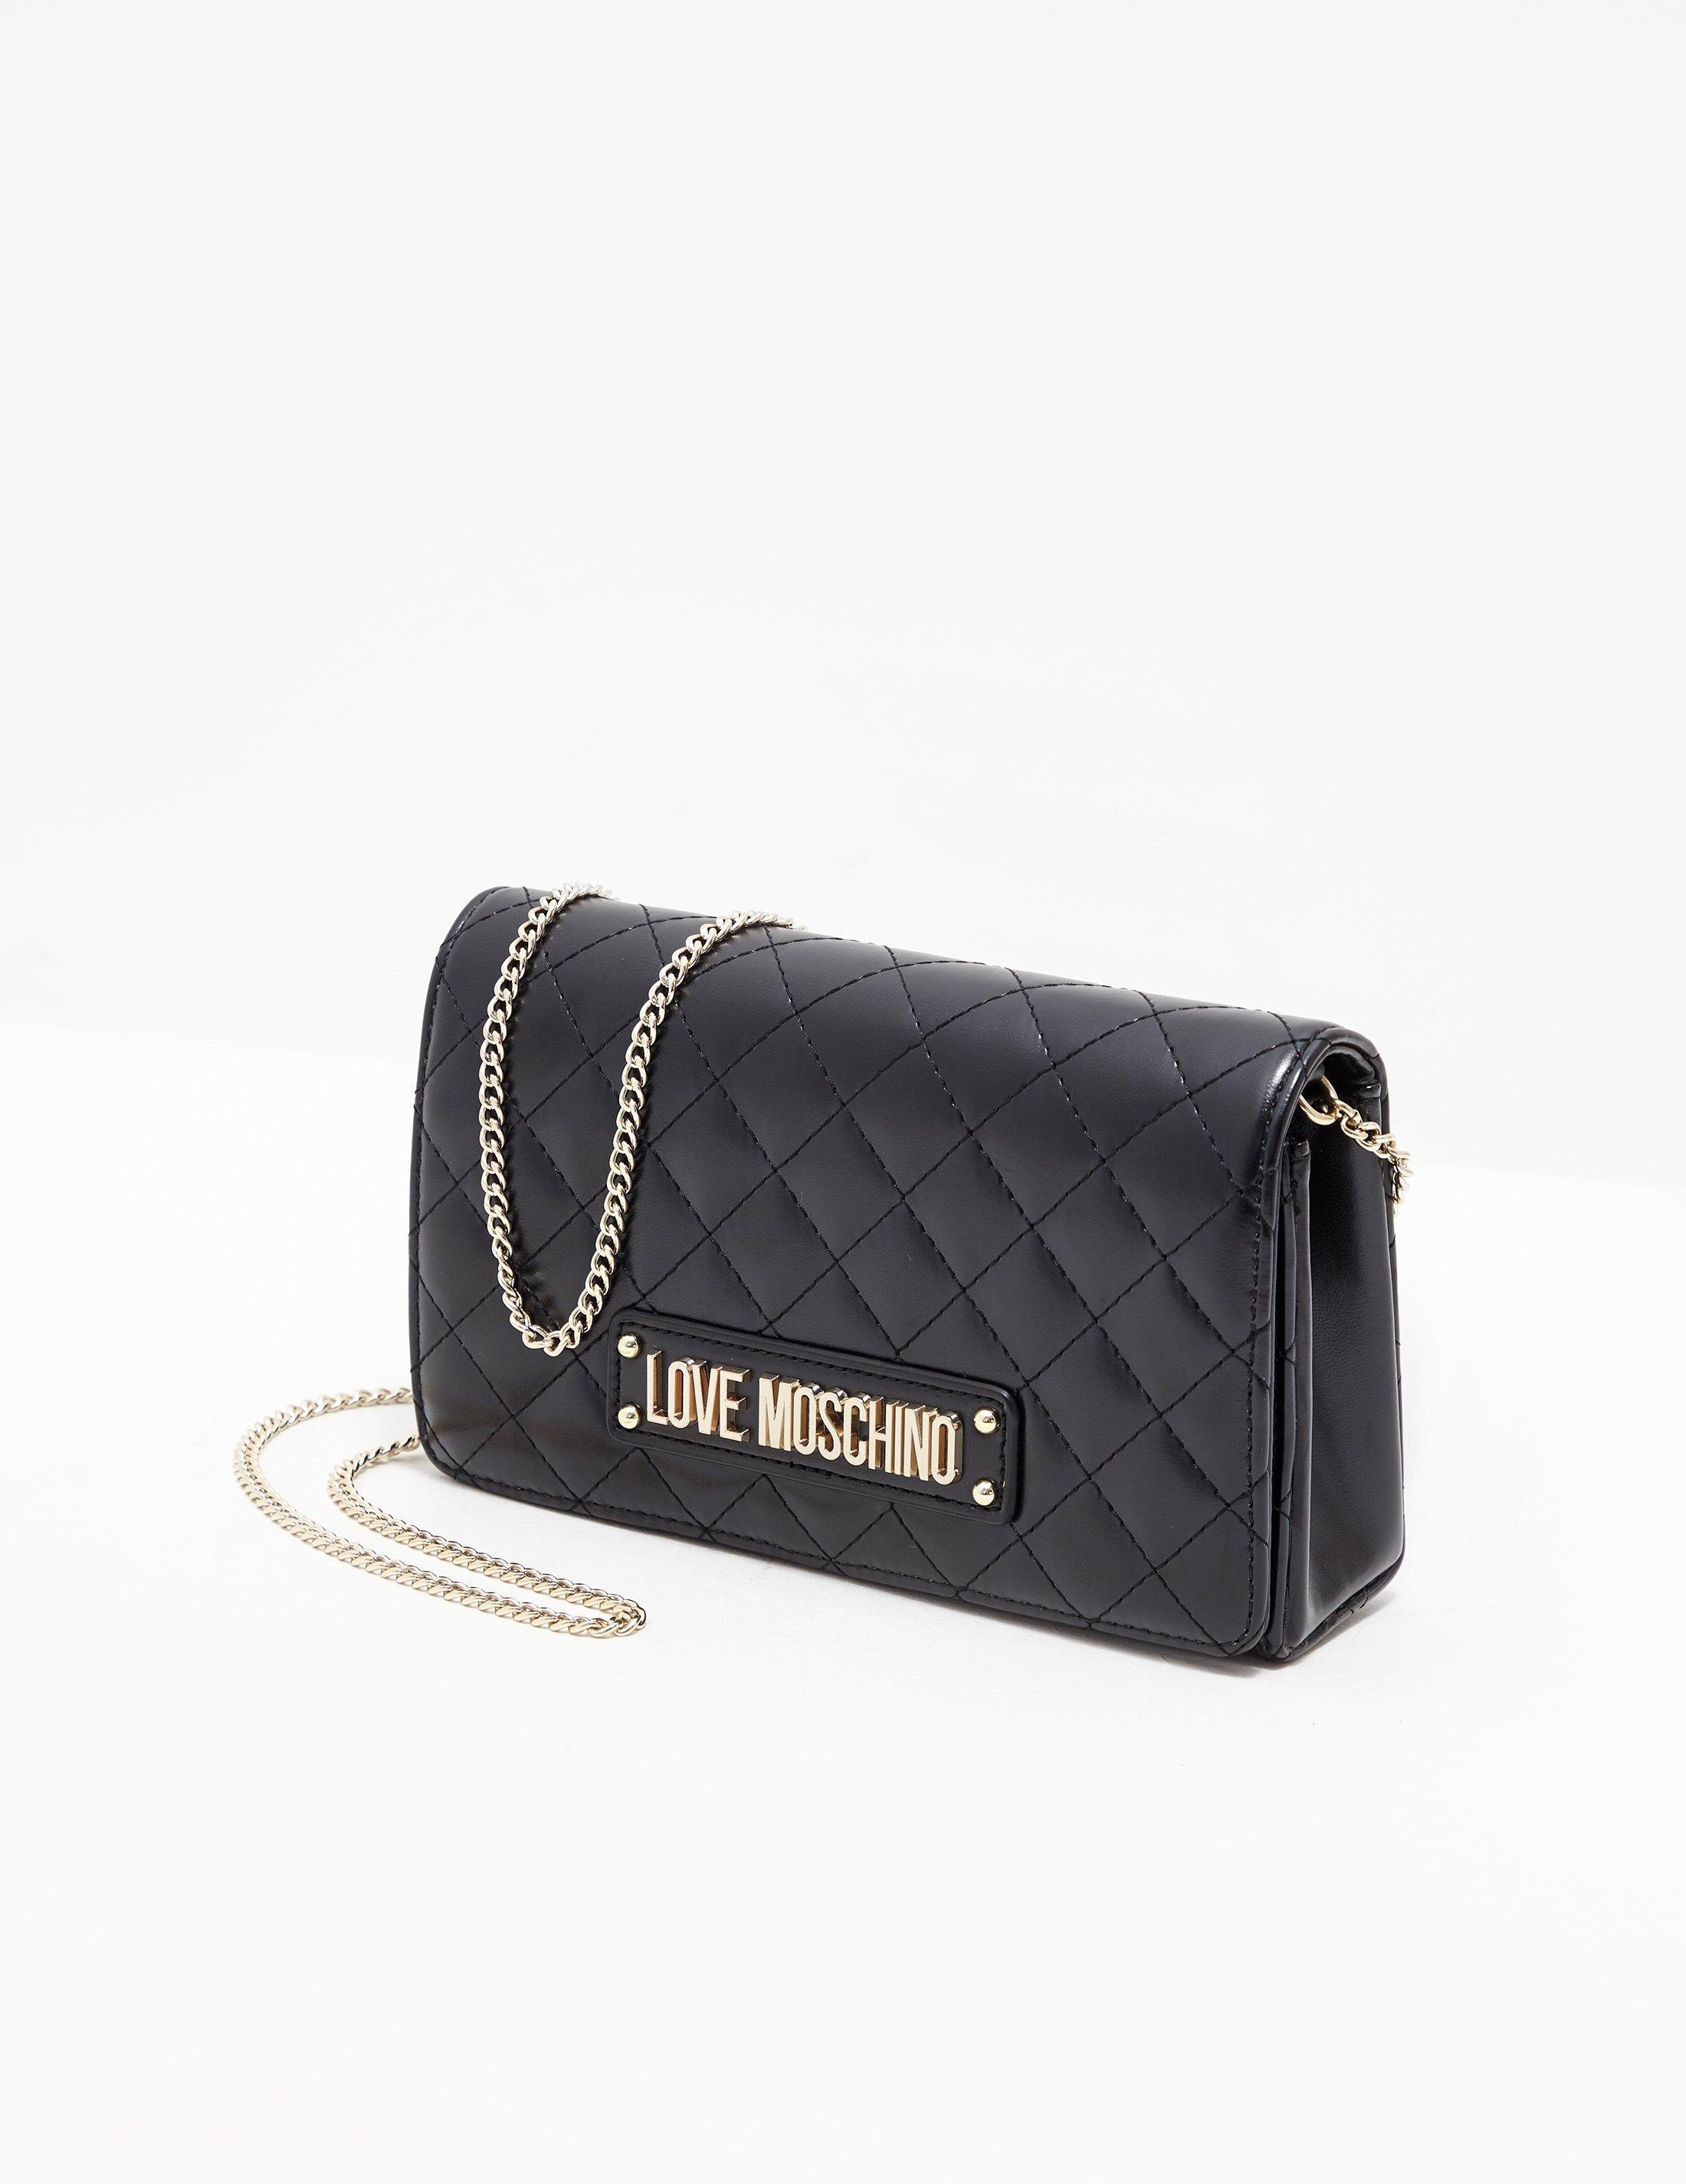 139124b7fbf Love Moschino Quilted Chain Shoulder Bag Black in Black - Lyst